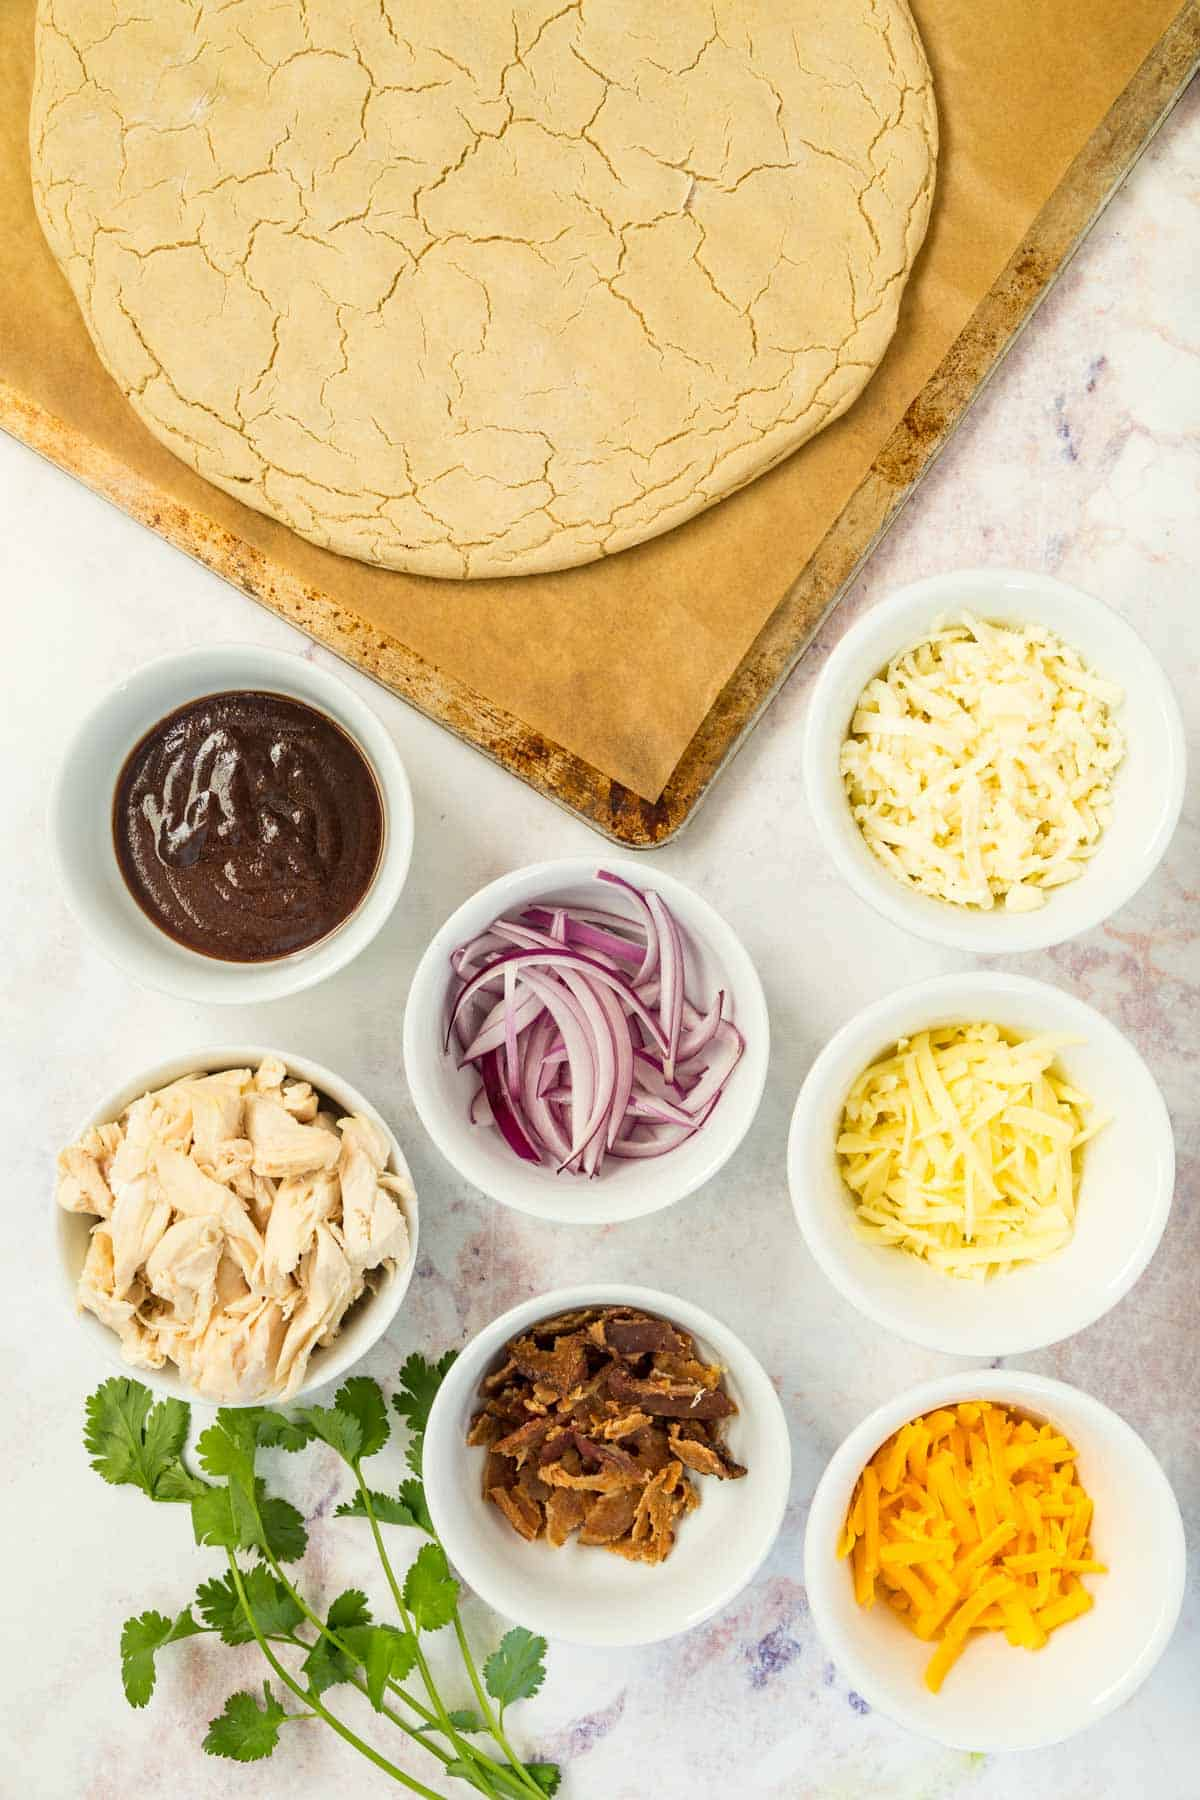 pizza crust plus bowls of barbecue sauce, chicken, three kinds of cheese, crumbled bacon, and sliced red onions, plus a bunch of cilantro on a marble tabletop